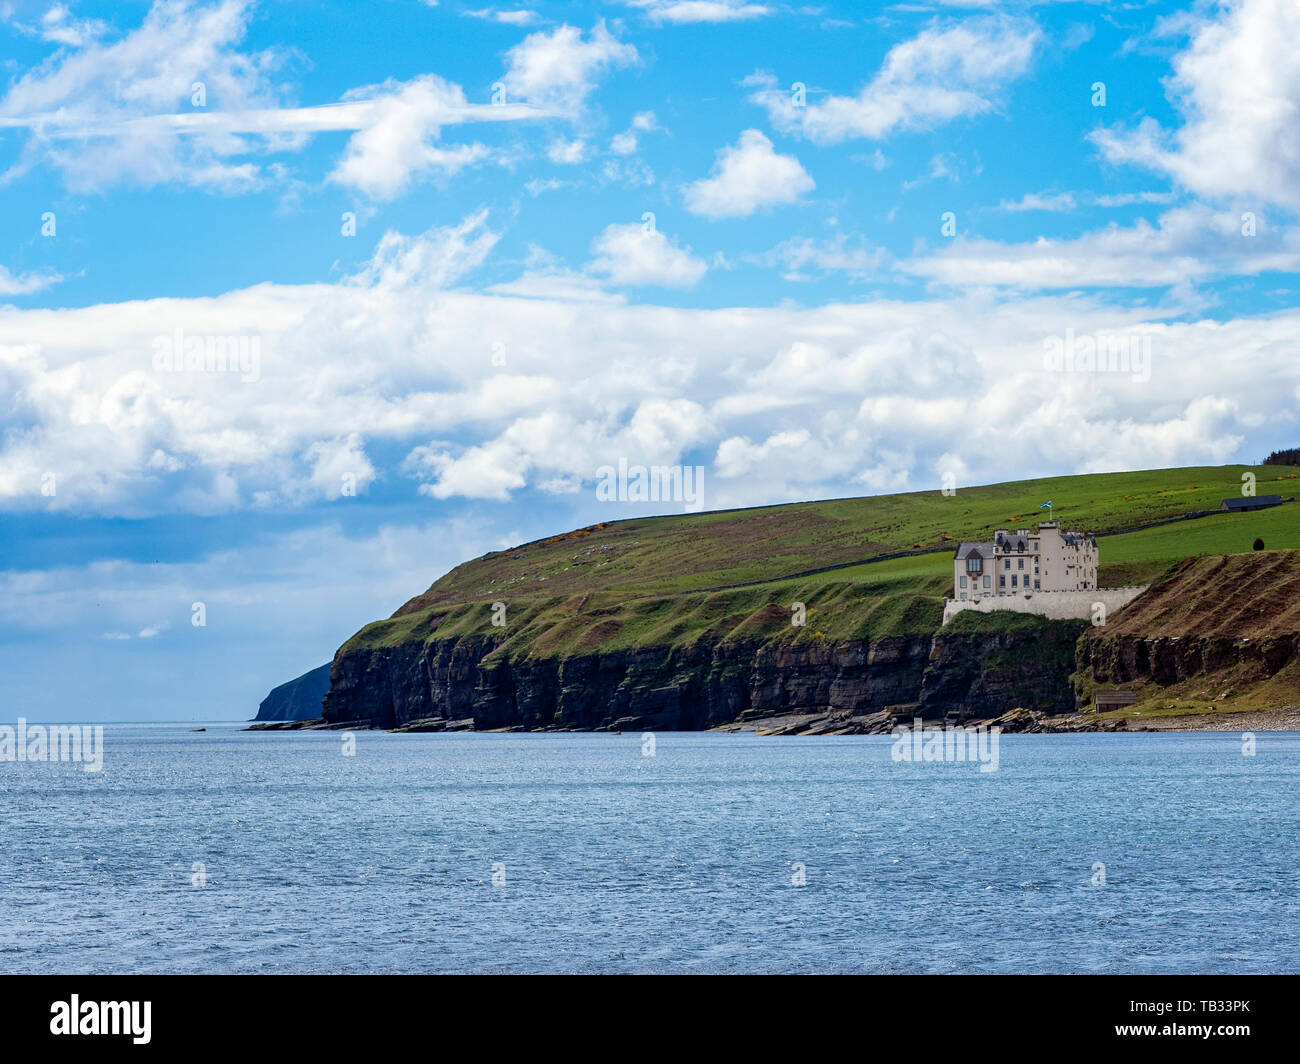 View of Dunbeath Castle, Caithness, Scotland, - Stock Image